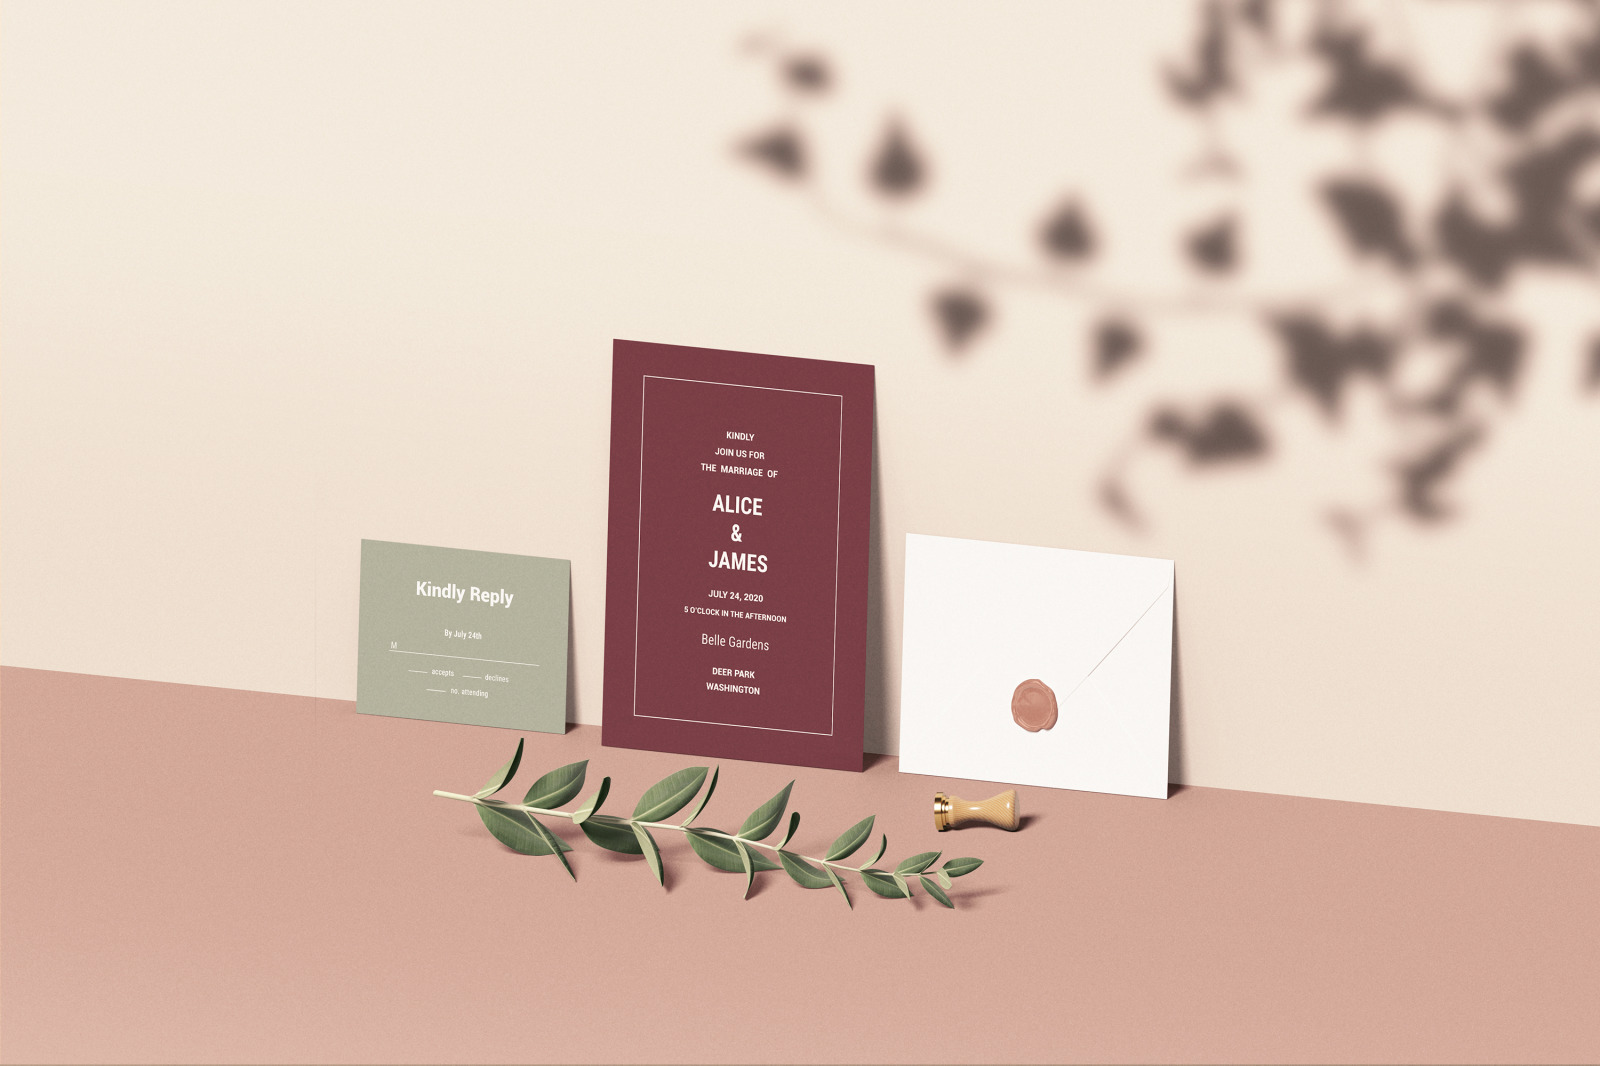 Download Wedding Invitation Set Mockup In Stationery Mockups On Yellow Images Creative Store PSD Mockup Templates